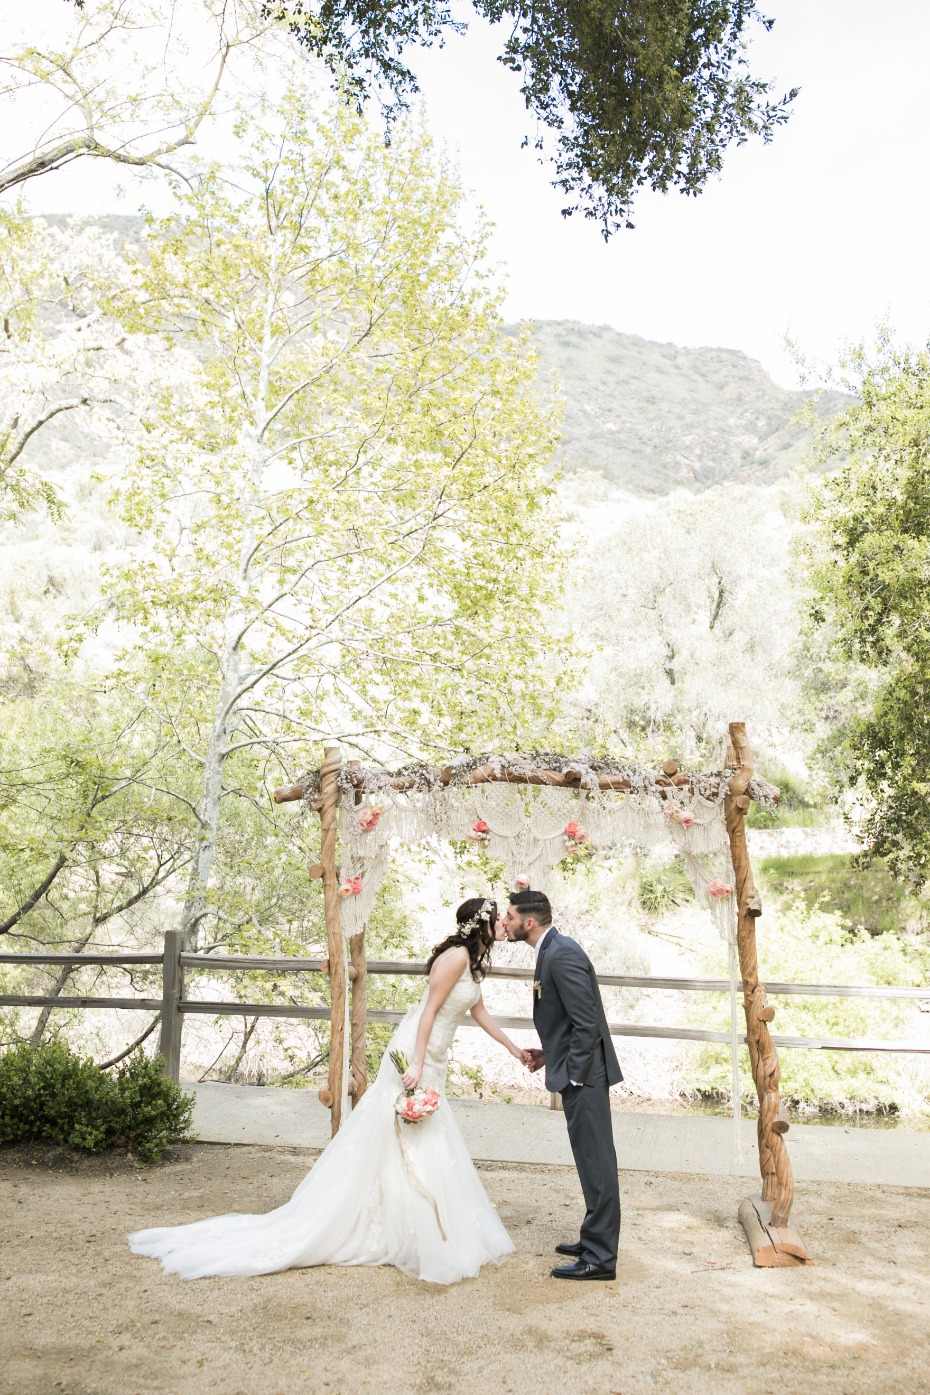 Dreamy boho ceremony